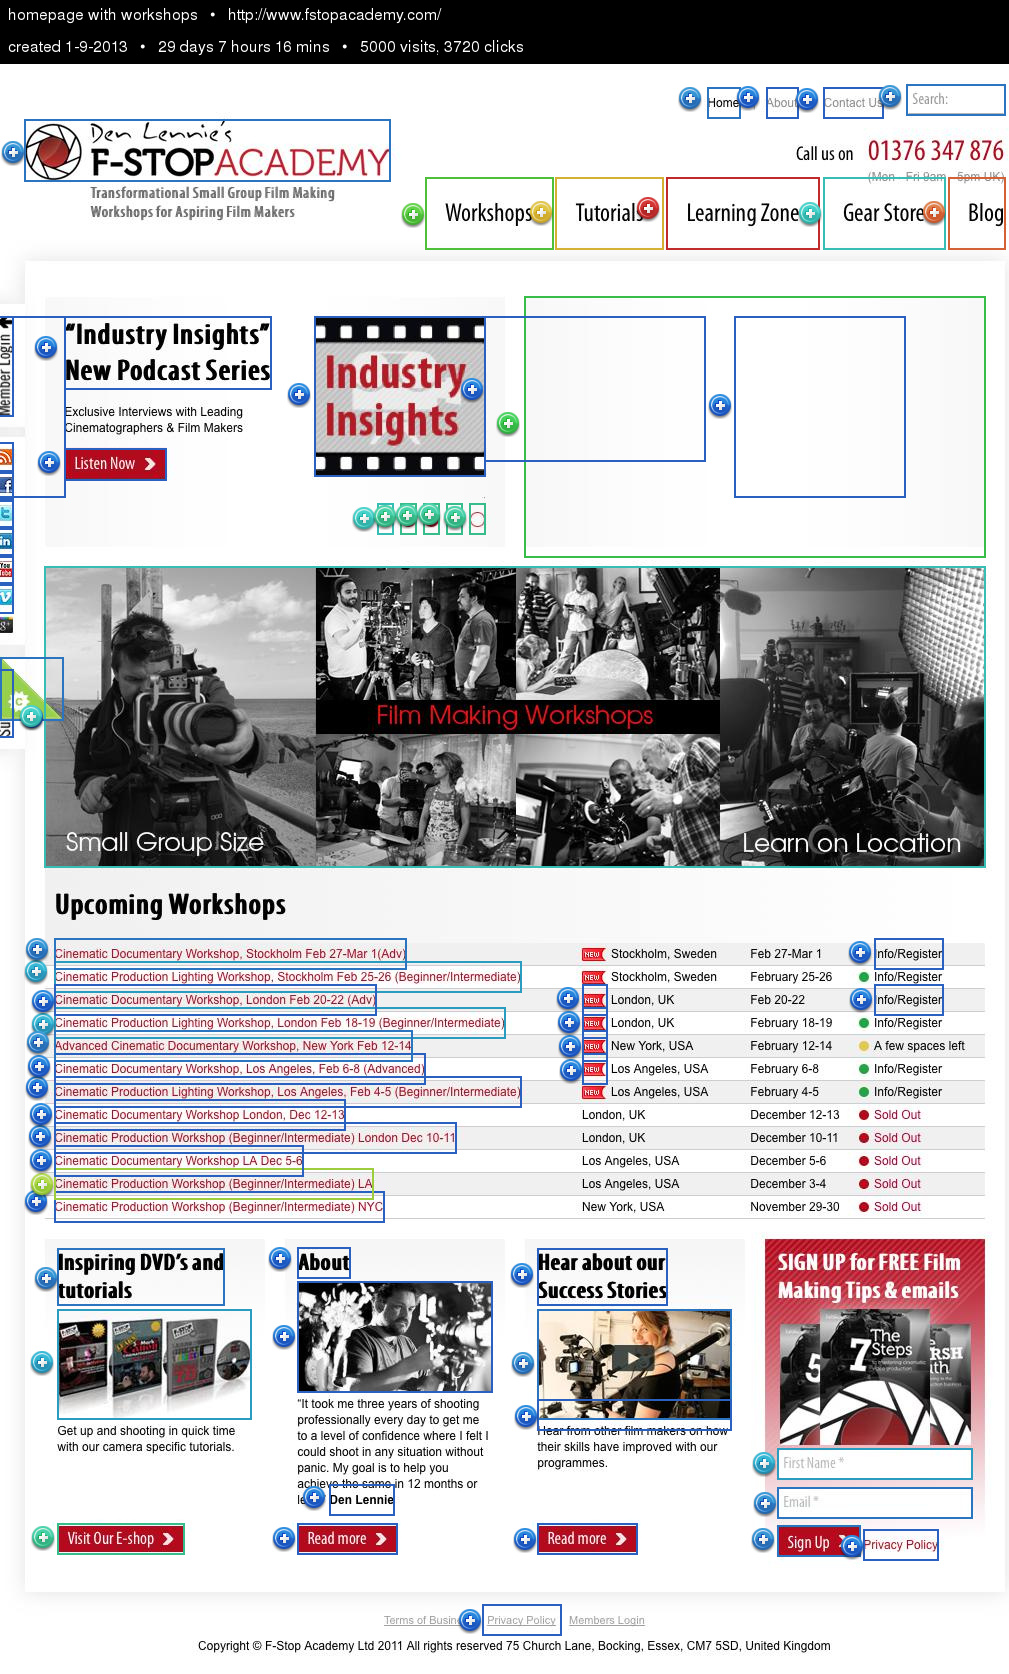 Overlay homepage with workshops, 1-9-2013